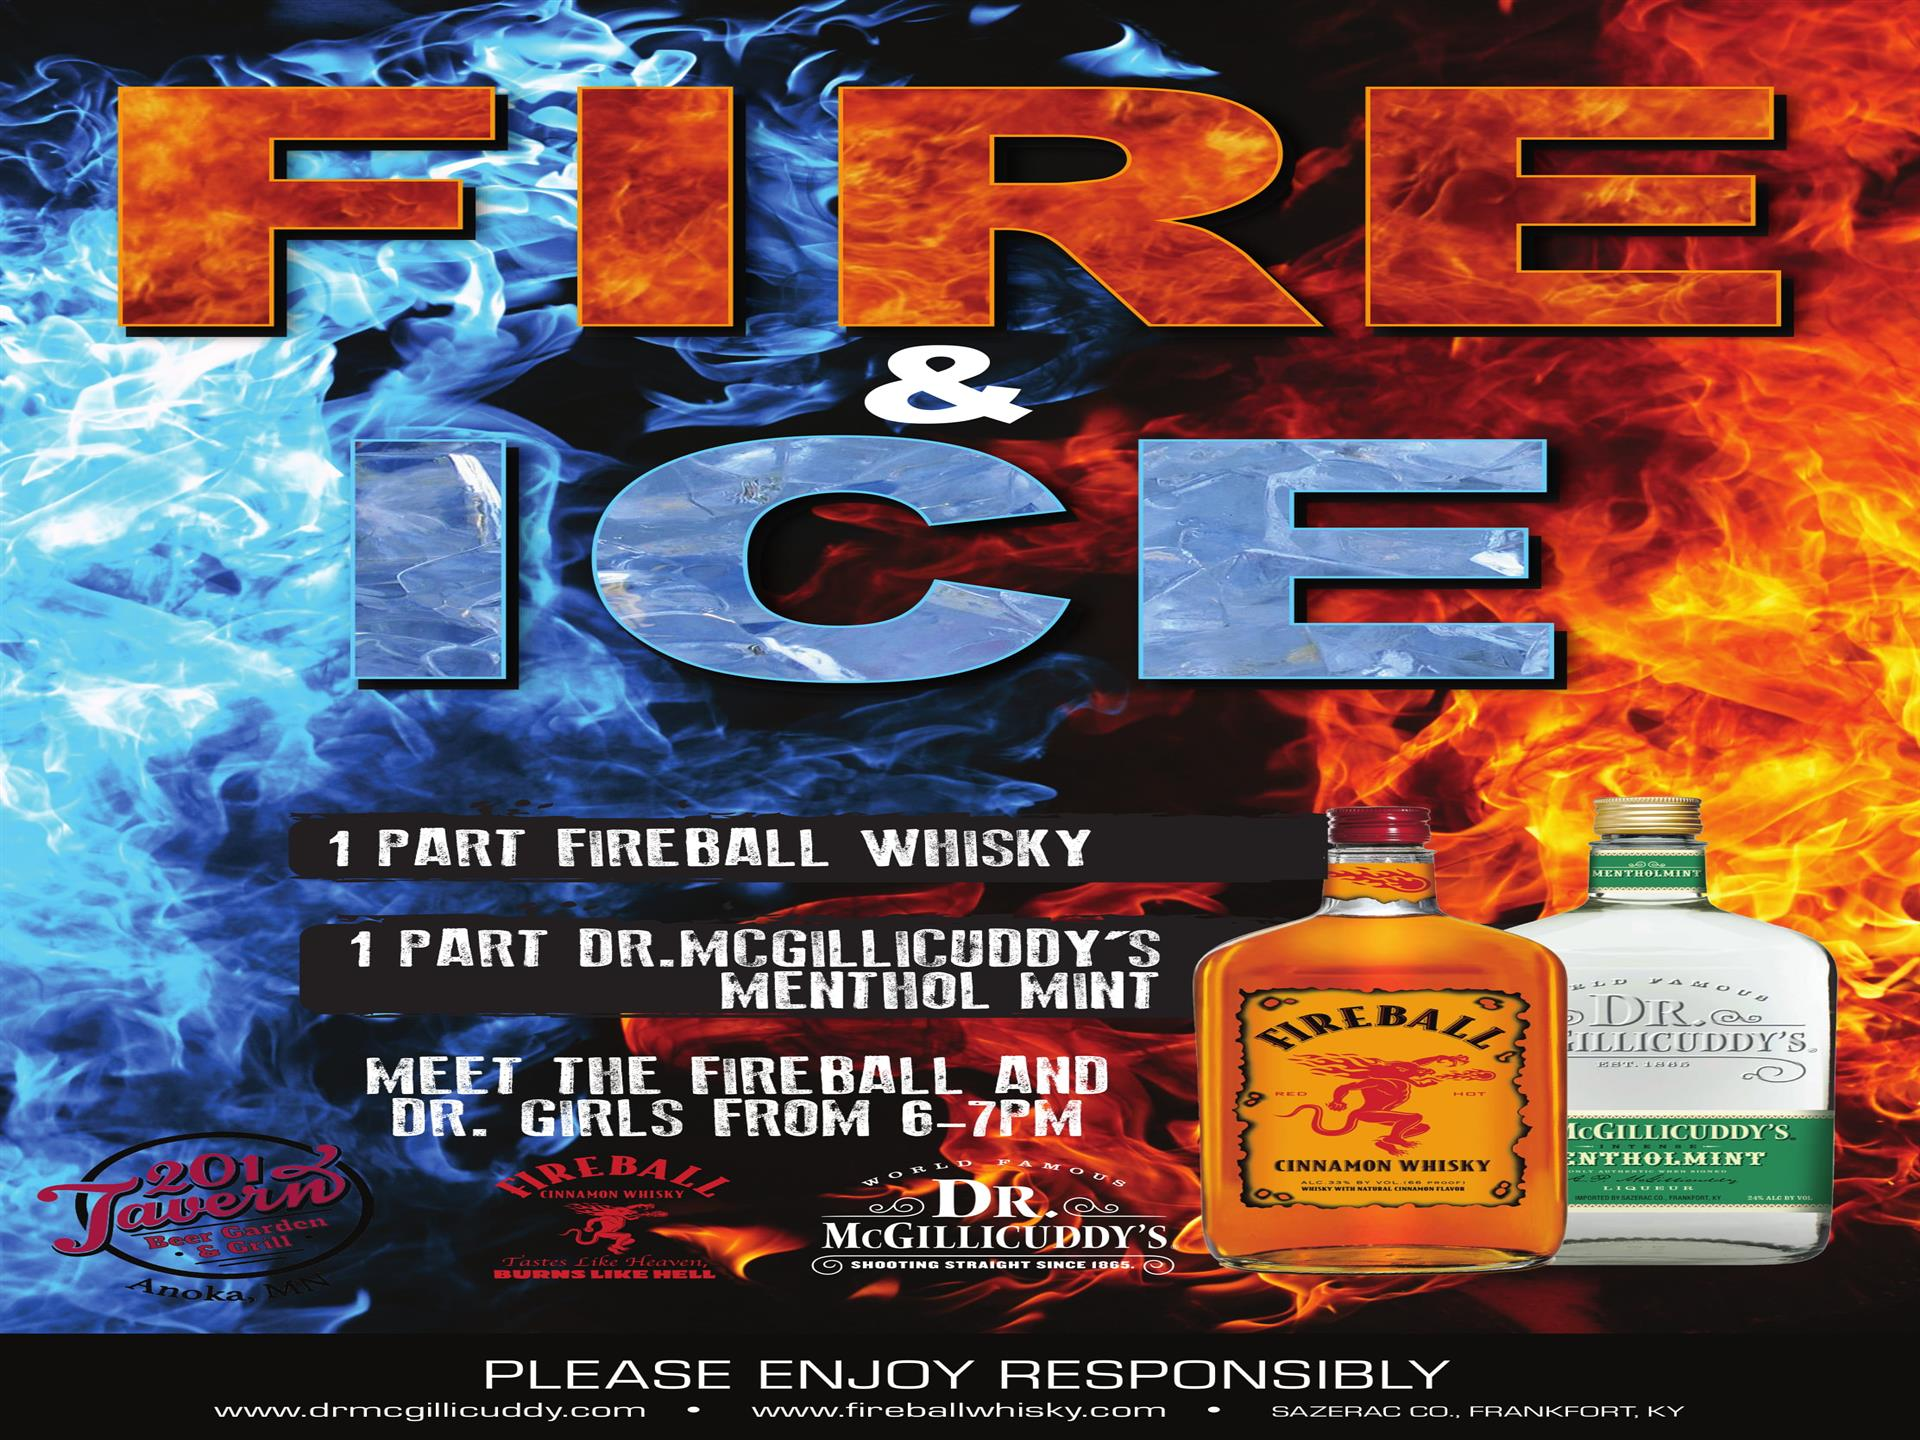 Fire and Ice. 1 Part fireball whiskey, 1 part Dr. McGillicuddy's Methol Mint. Meet the Fireball and Dr. Girls from 5-7pm